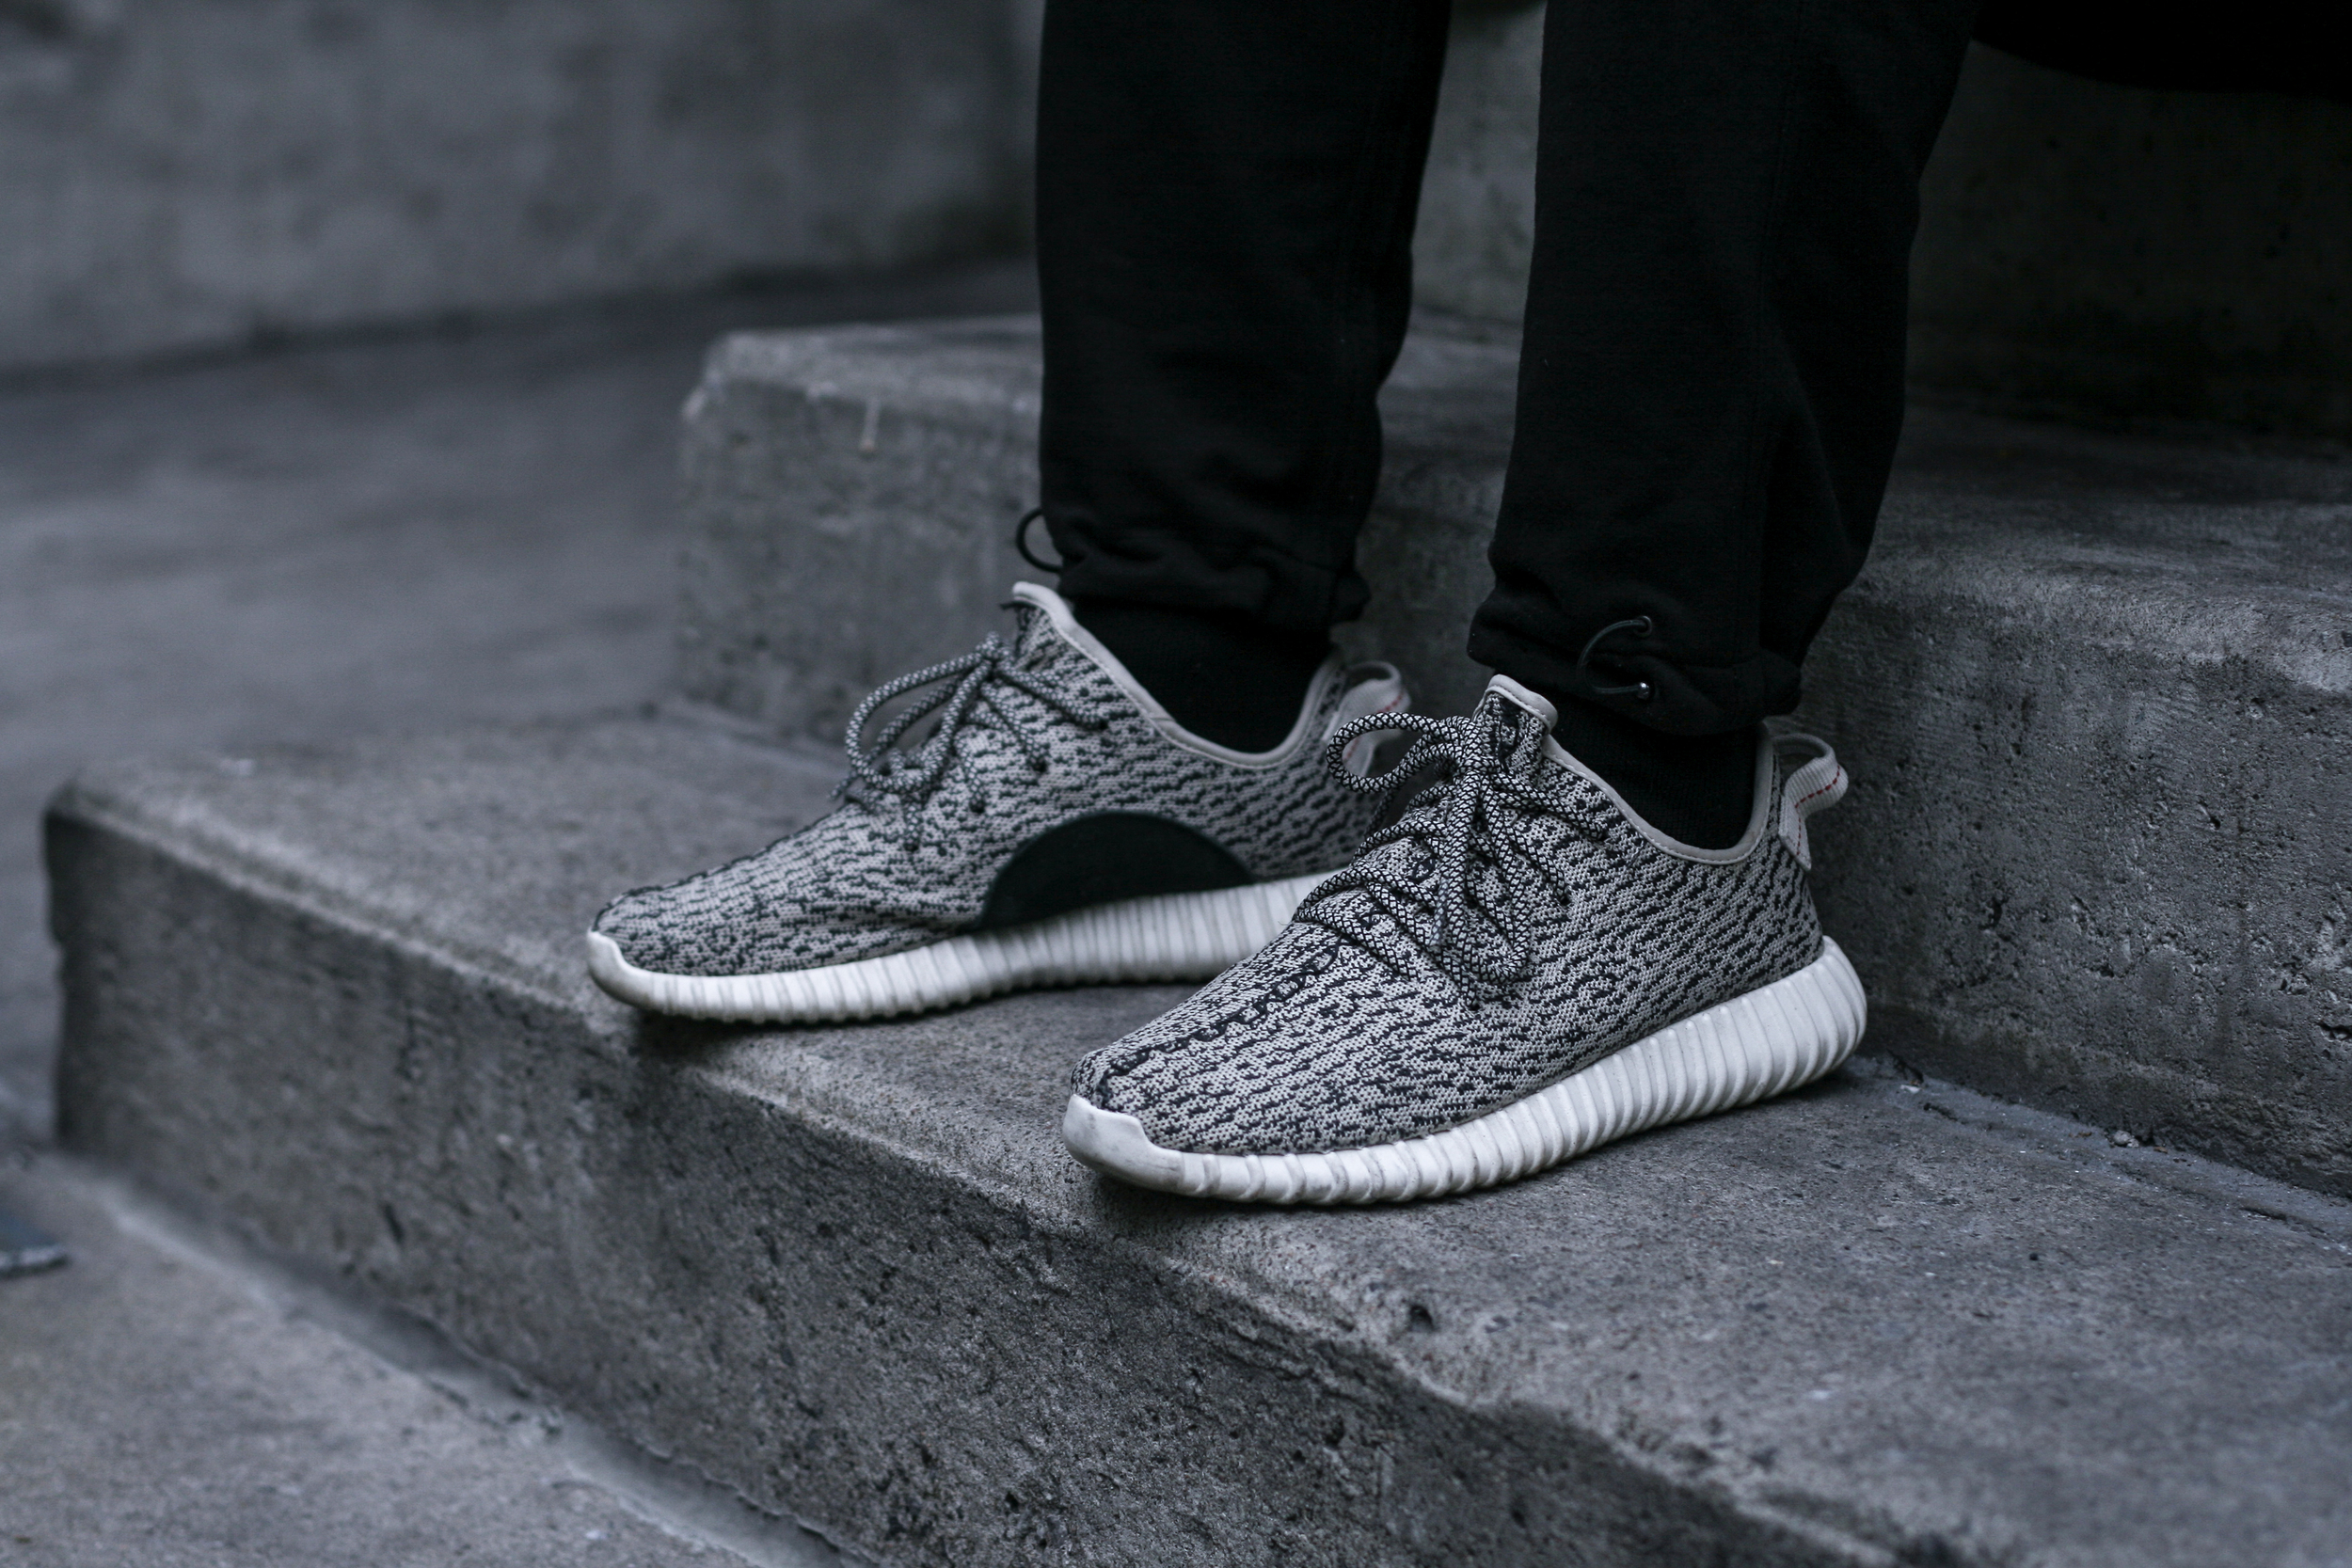 1. adidas Yeezy Boost 350 Turtledove